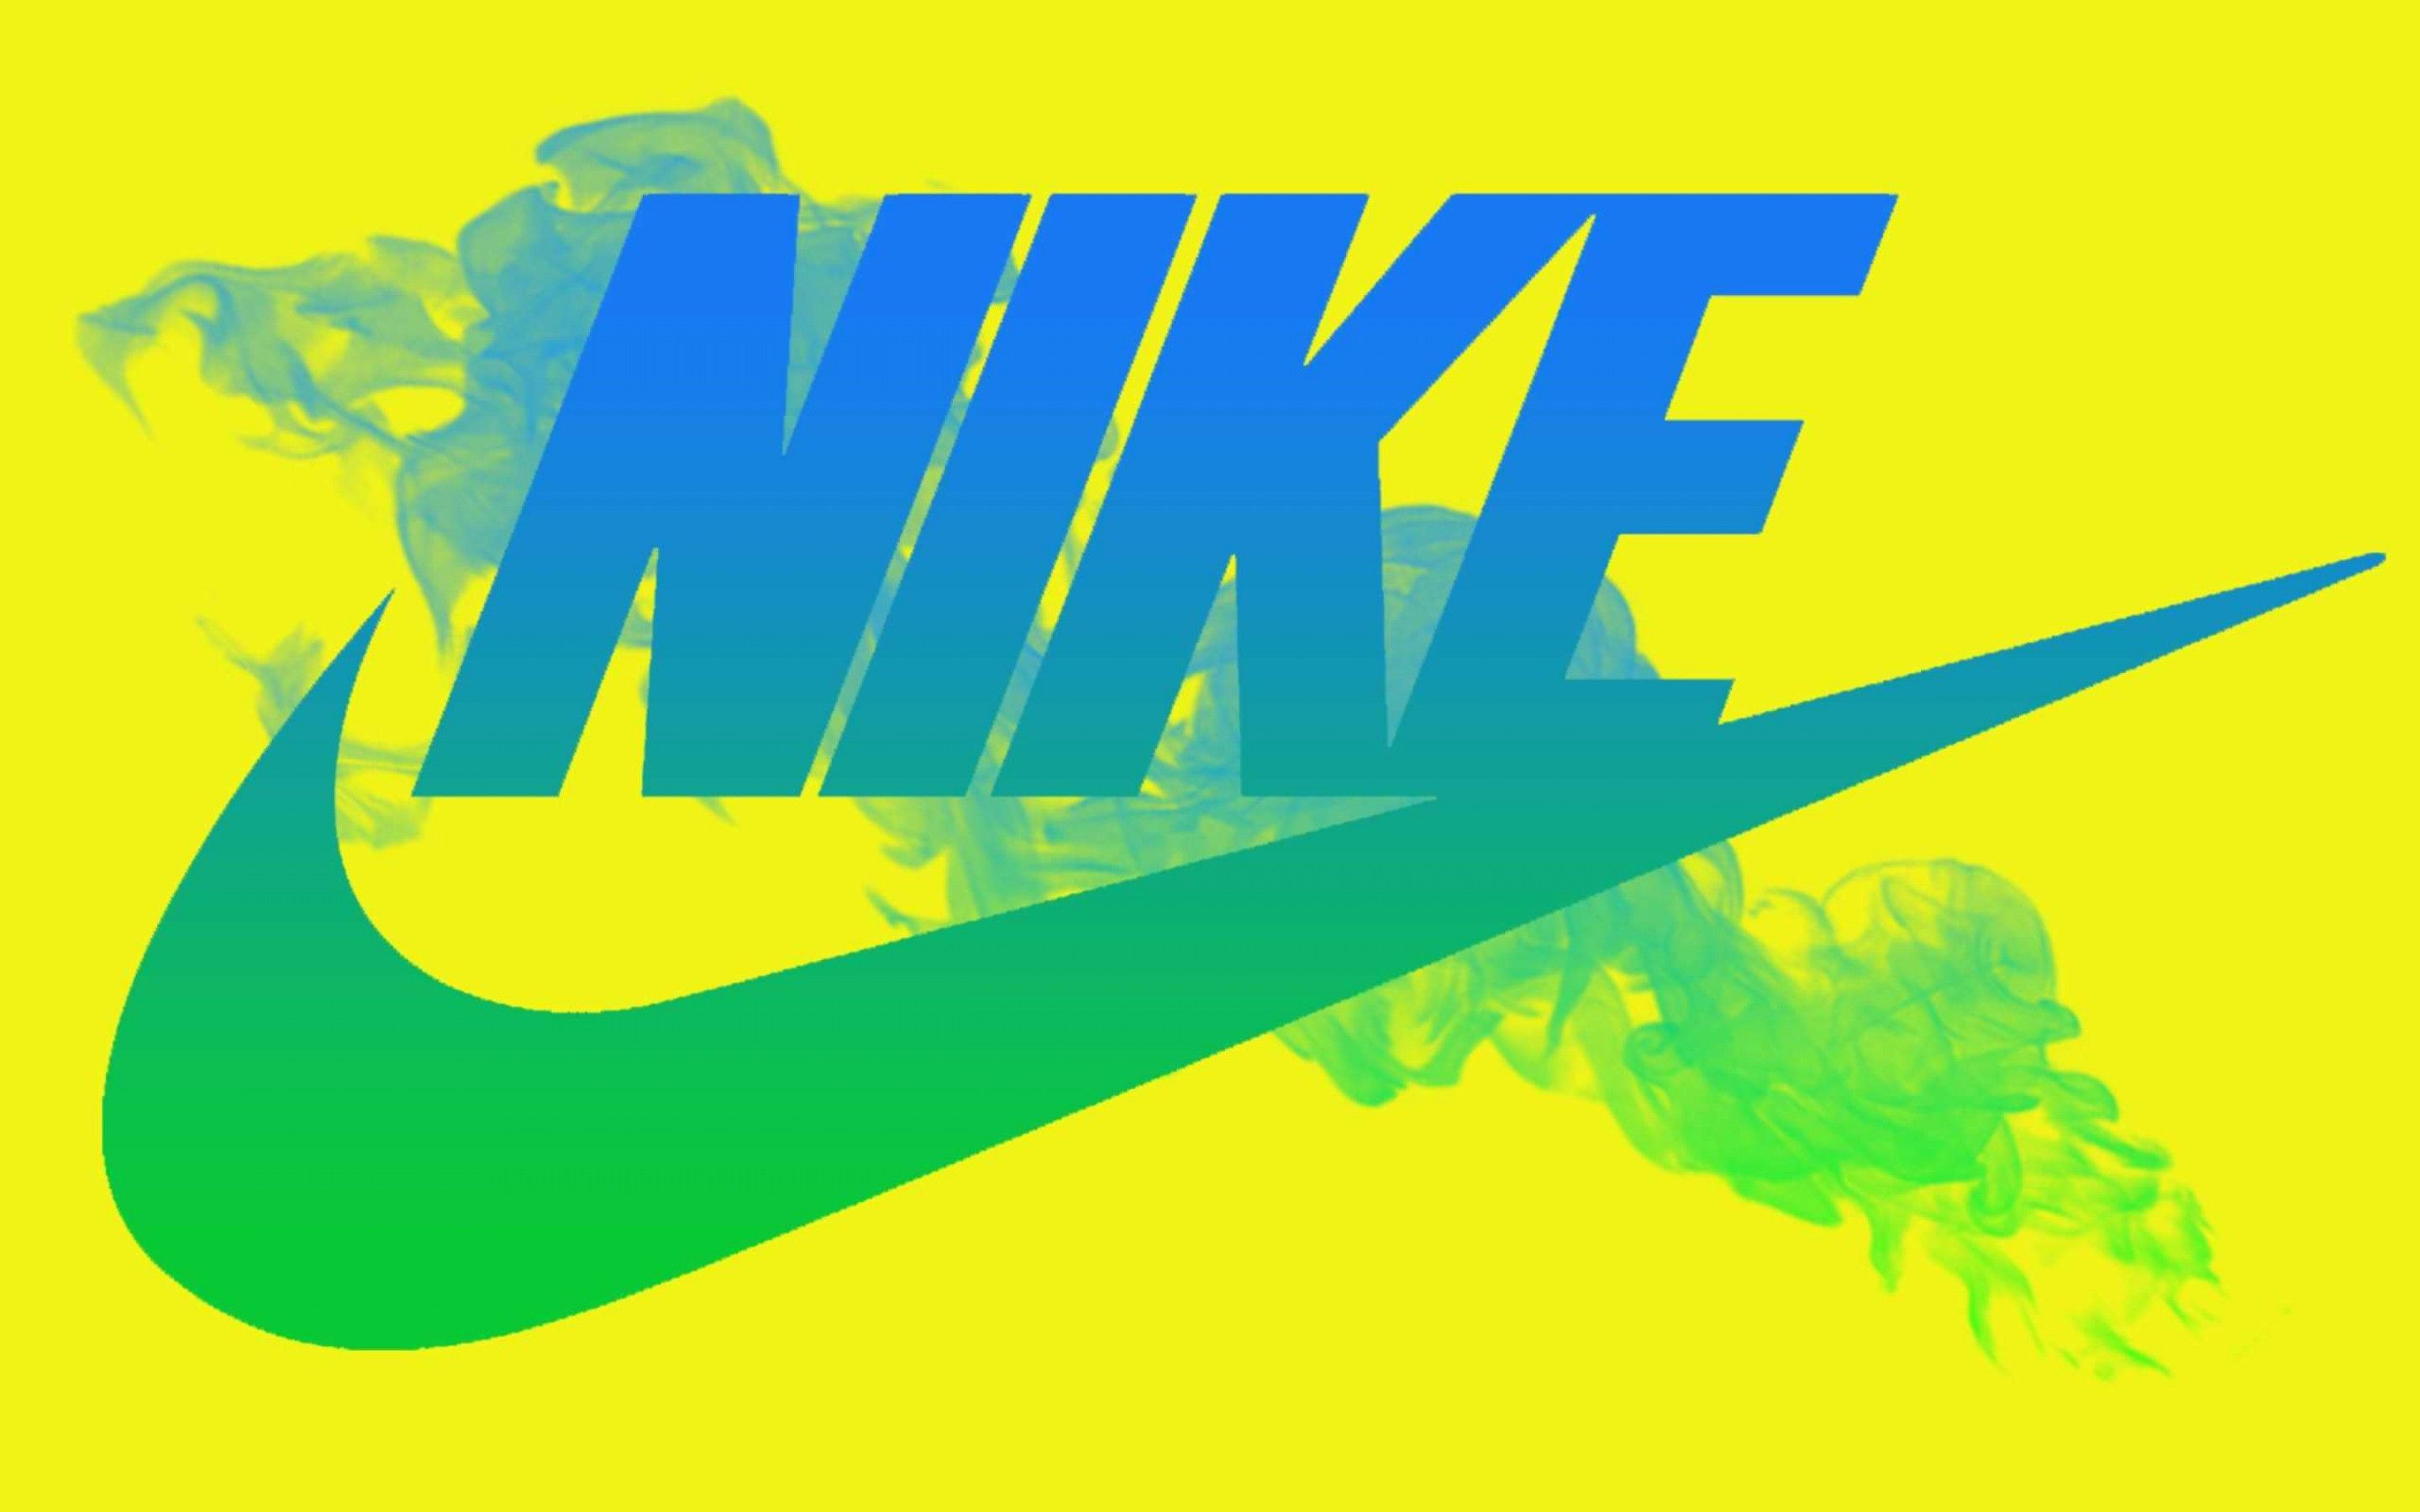 Cool nike wallpapers find best latest cool nike wallpapers in hd cool nike wallpapers find best latest cool nike wallpapers in hd for your pc desktop voltagebd Gallery